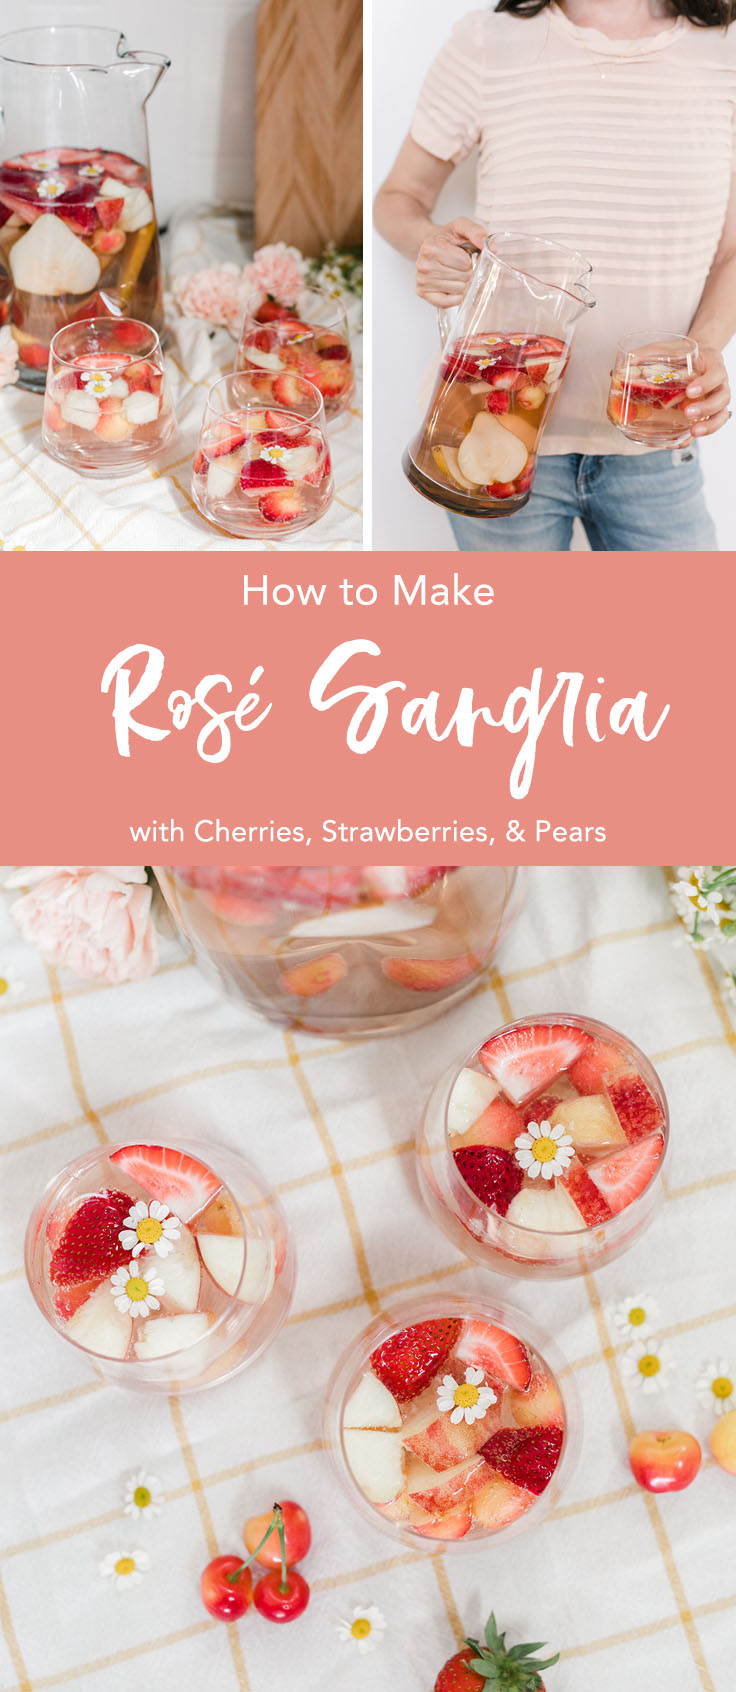 How to Make Rosé Sangria - the perfect summer cocktail!